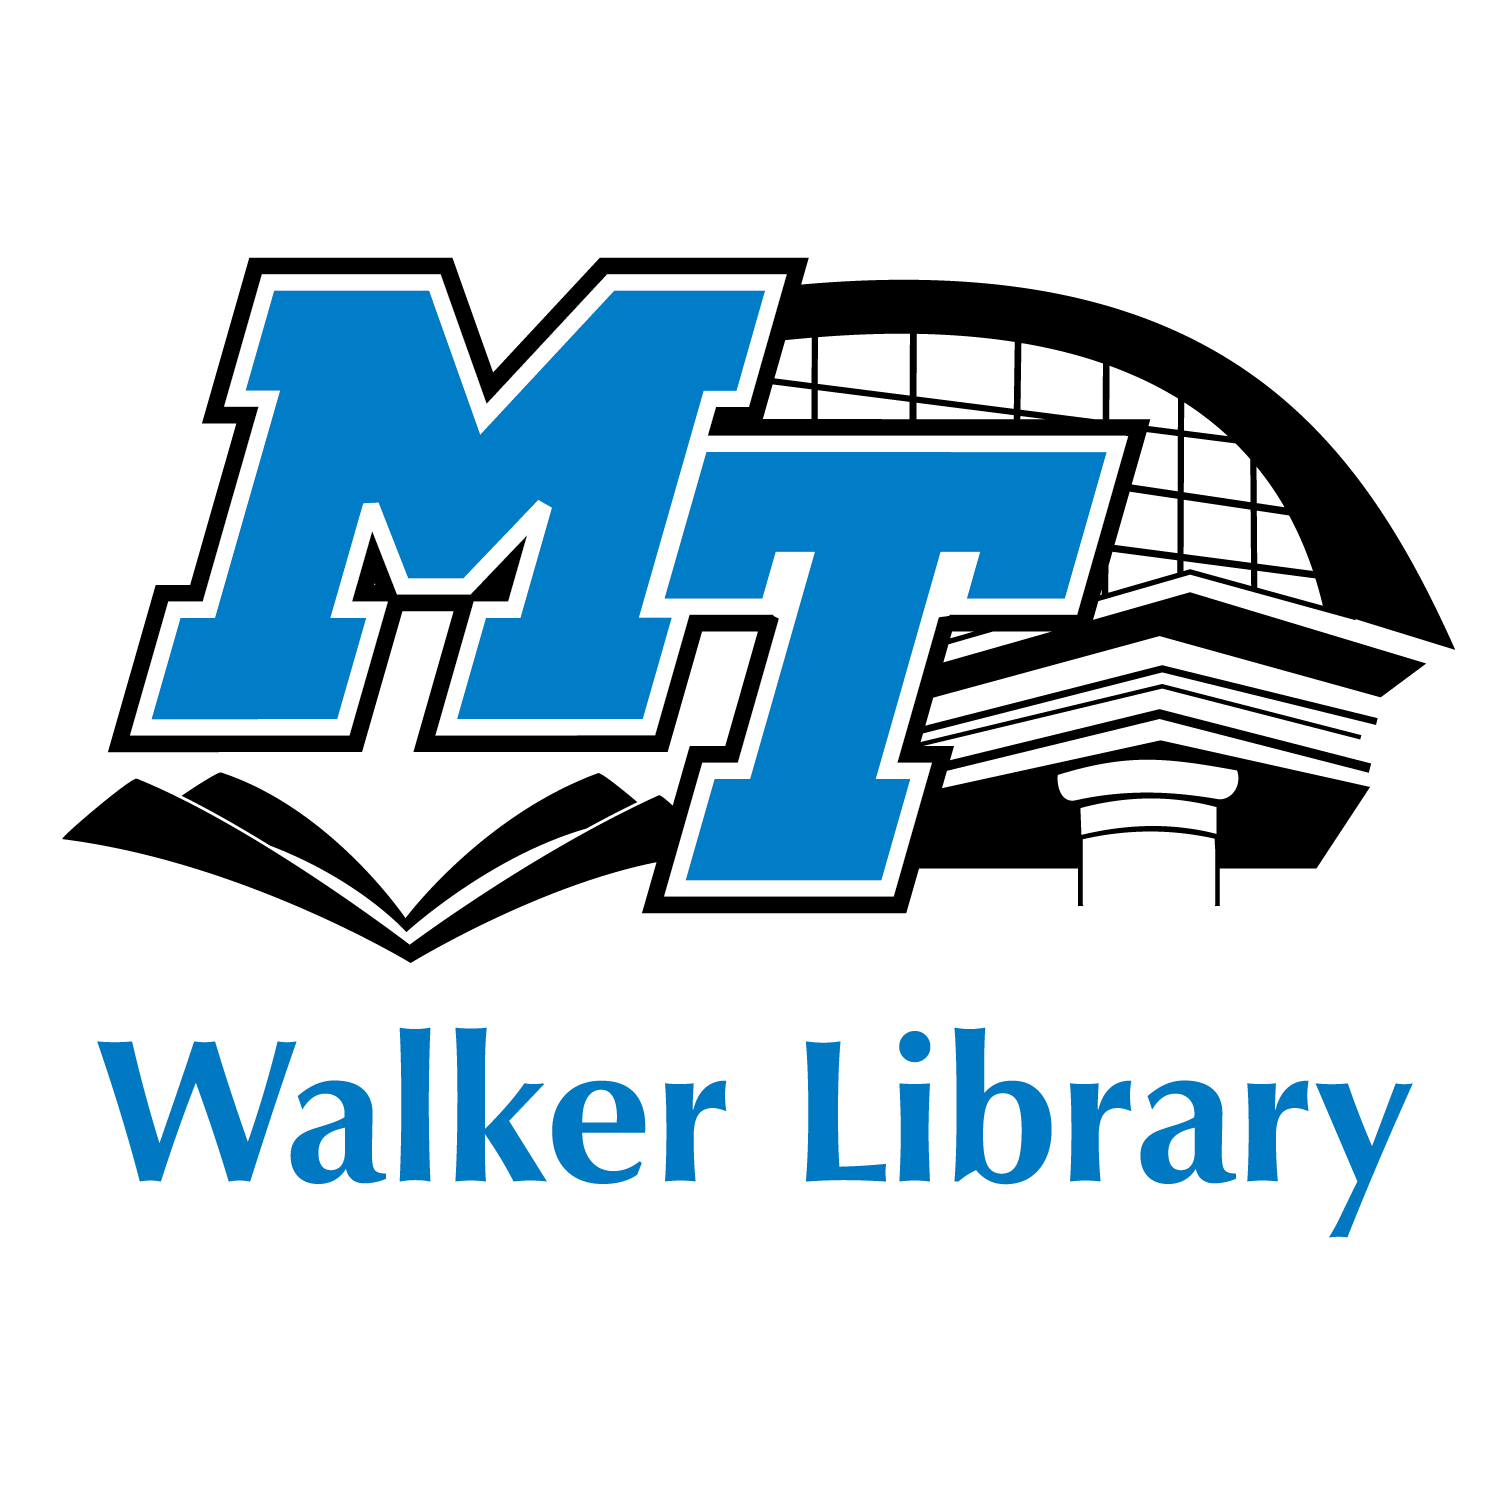 Walker library 01 logo